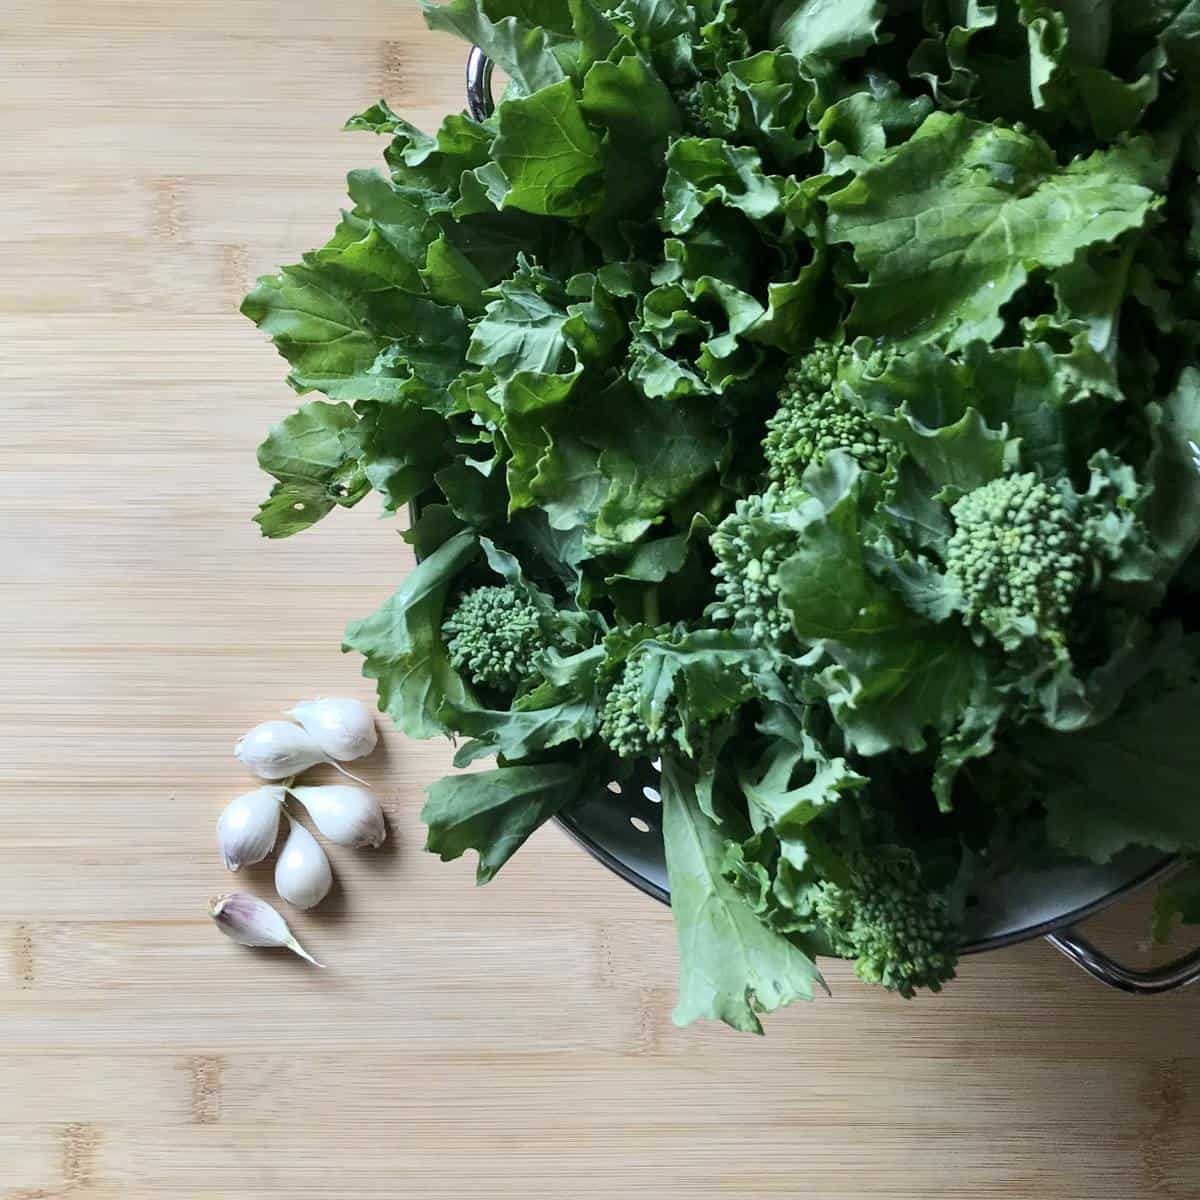 Garlic cloves and broccoli rabe on a wooden board.